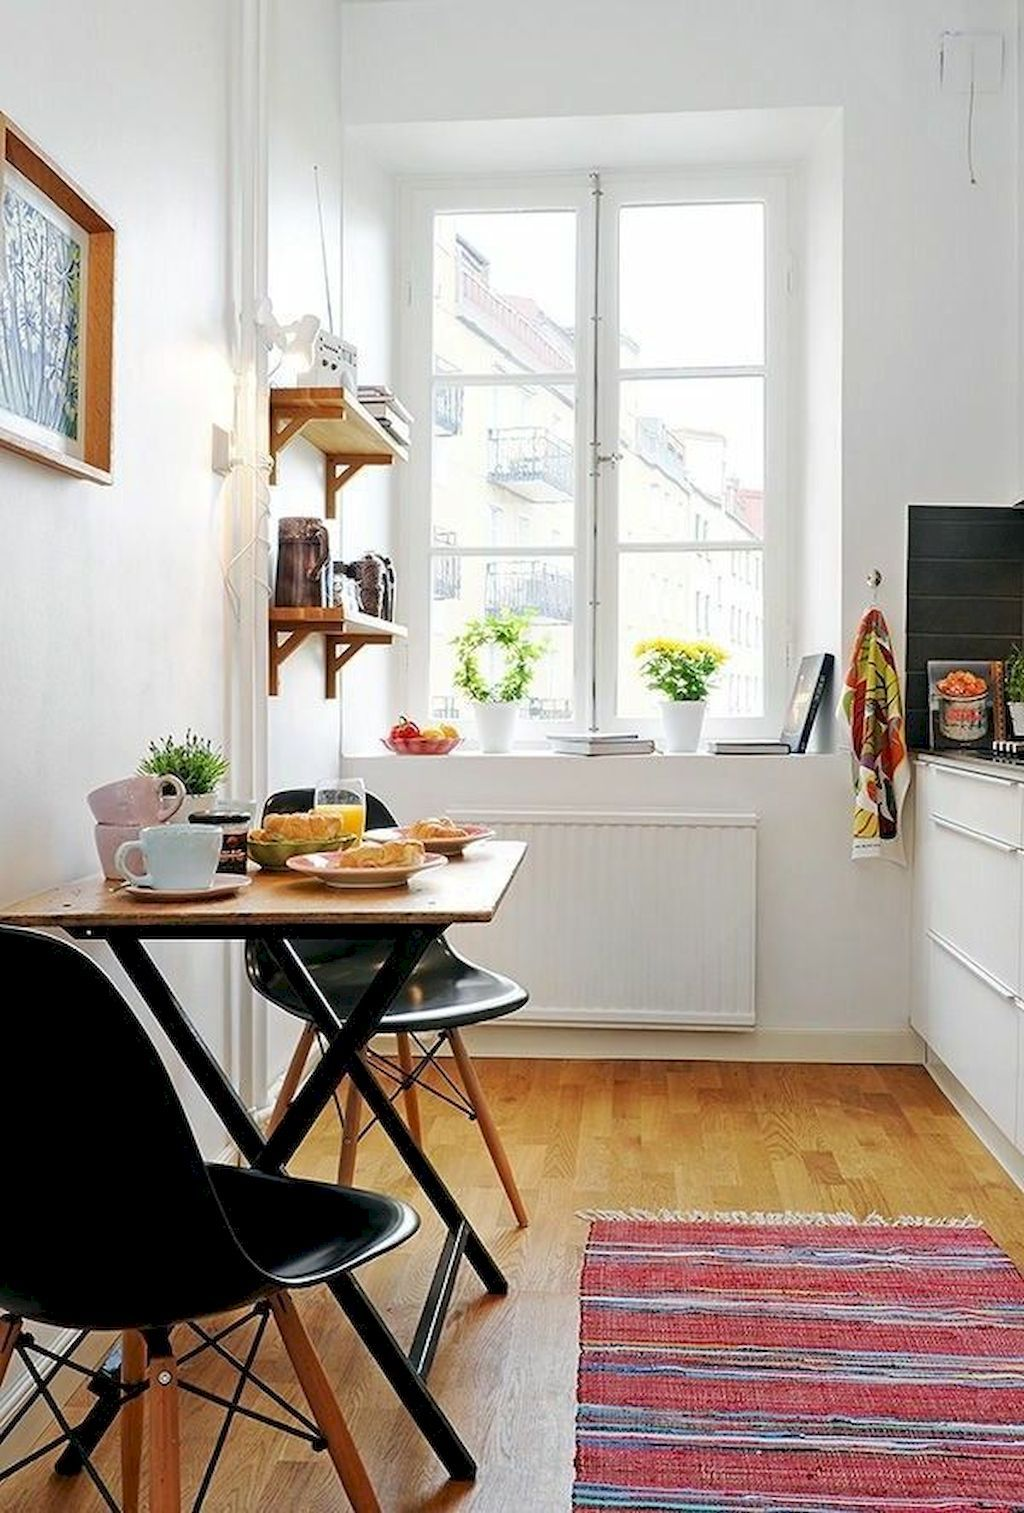 Küchenideen entlang einer wand  best dining table for small spaces  kitchen designs u decor